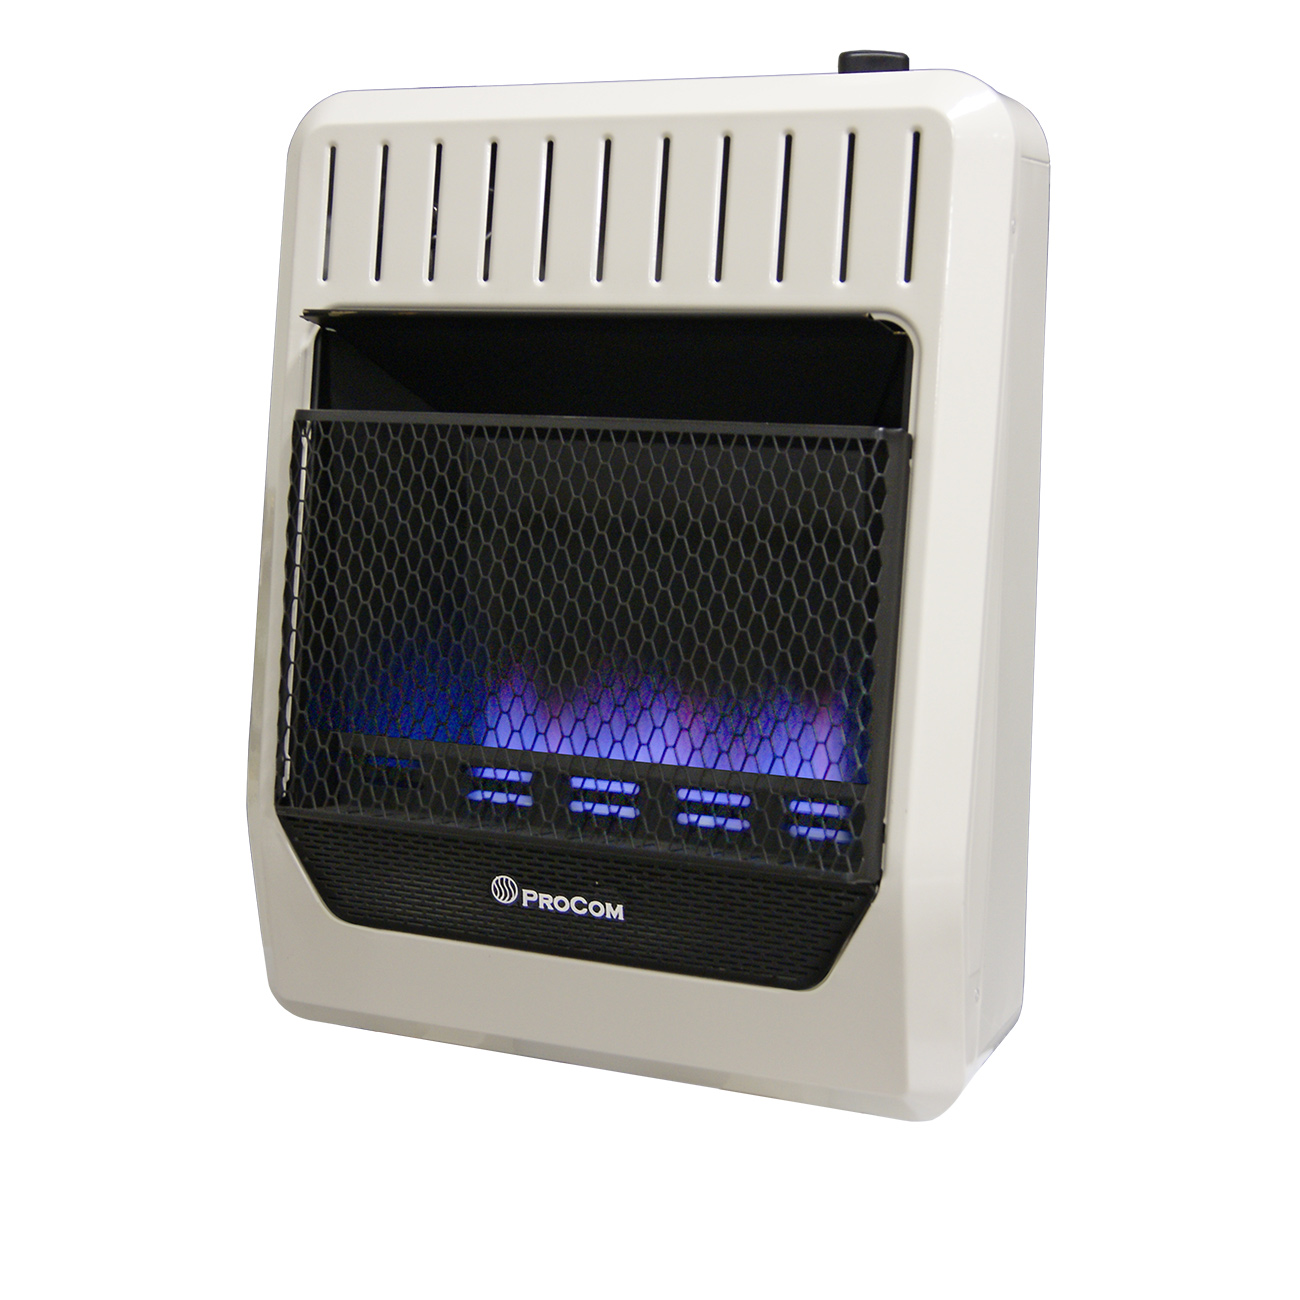 Ventless Dual Fuel Blue Flame Thermostat Control Wall